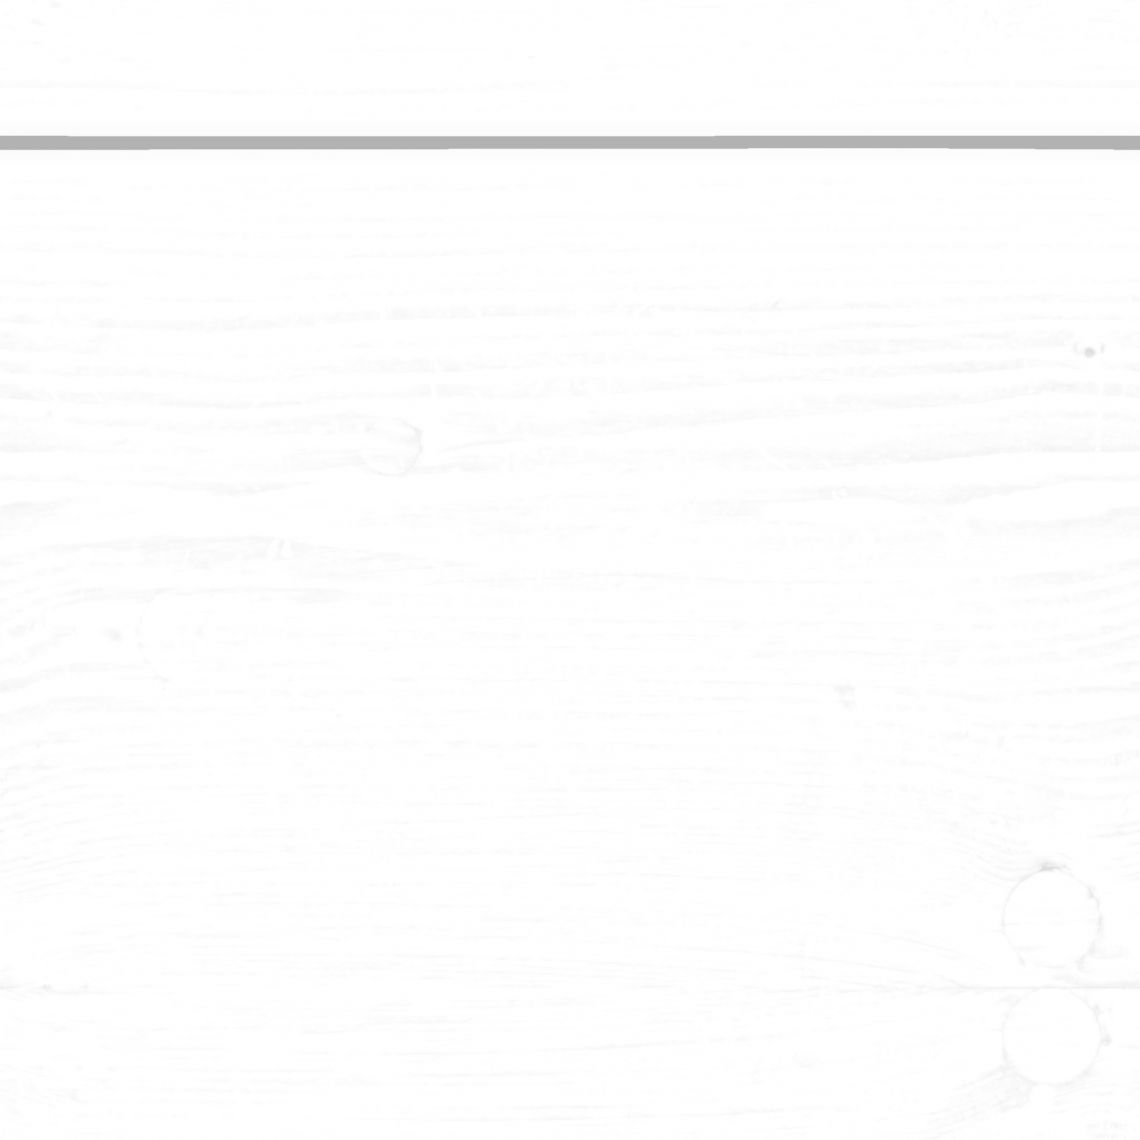 Wood-Plain-05-Ambient-Occlusion